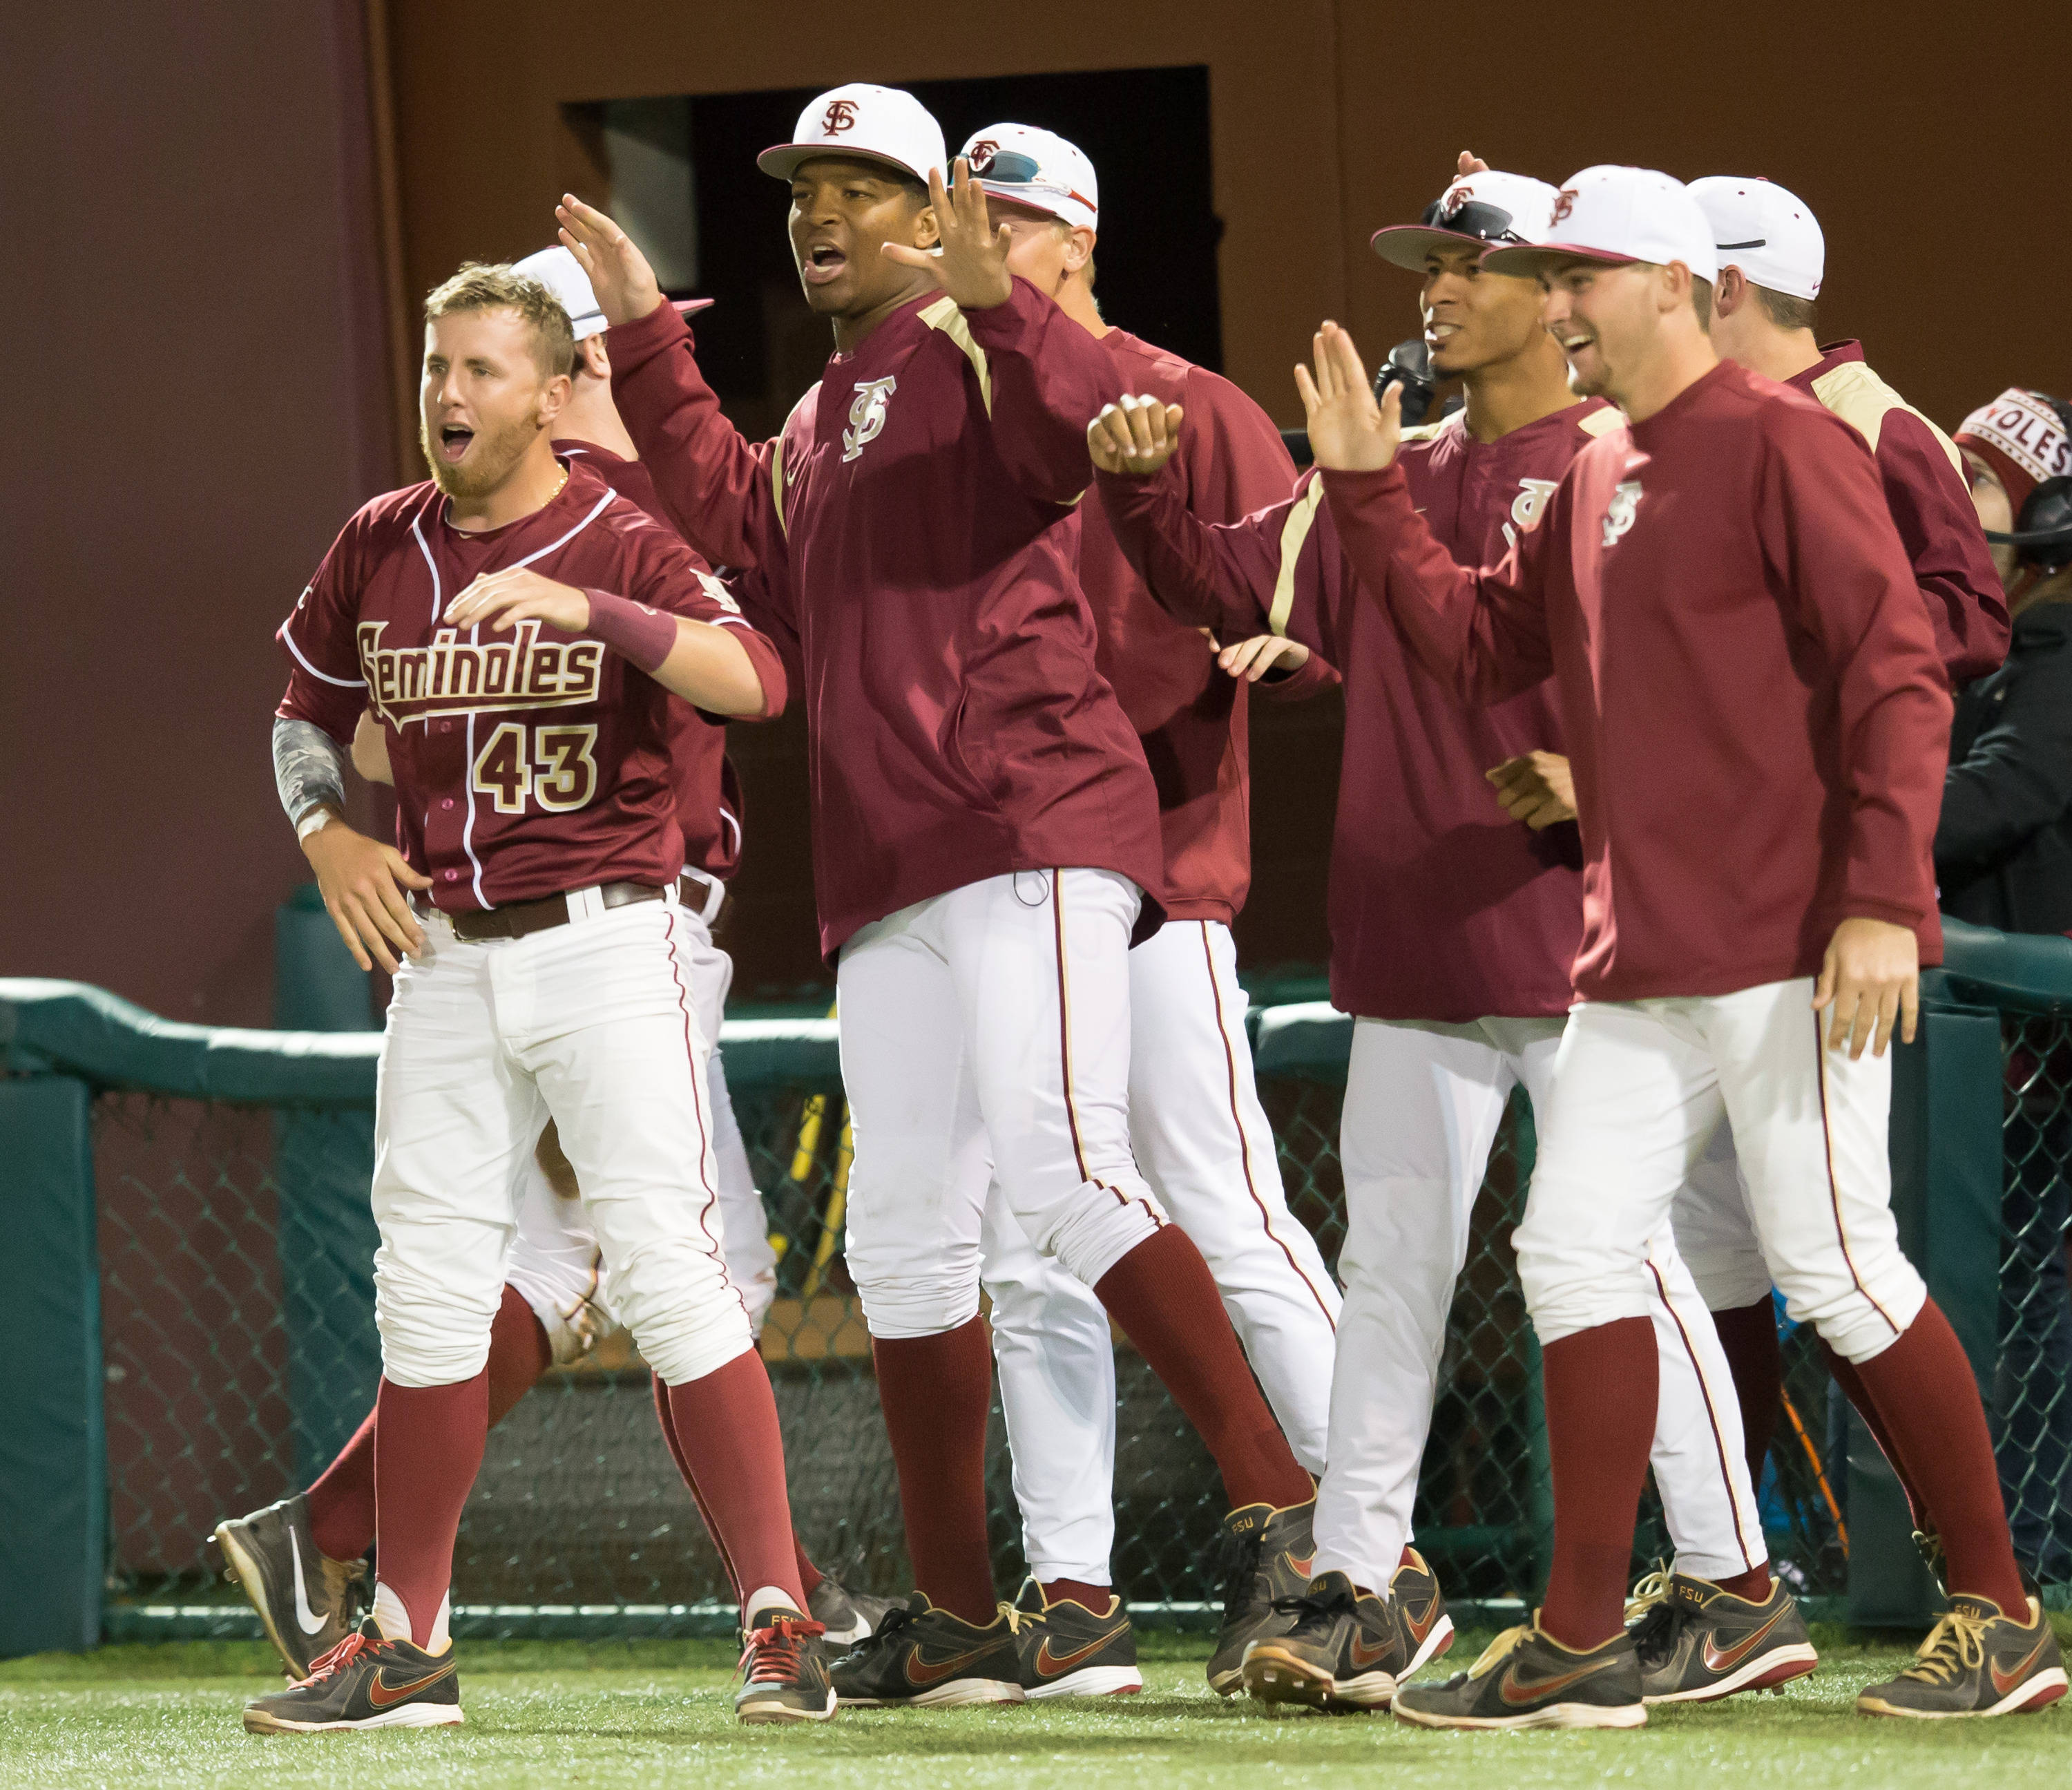 The Noles bench celebrates an inning ending double play in the bottom of the 7th.